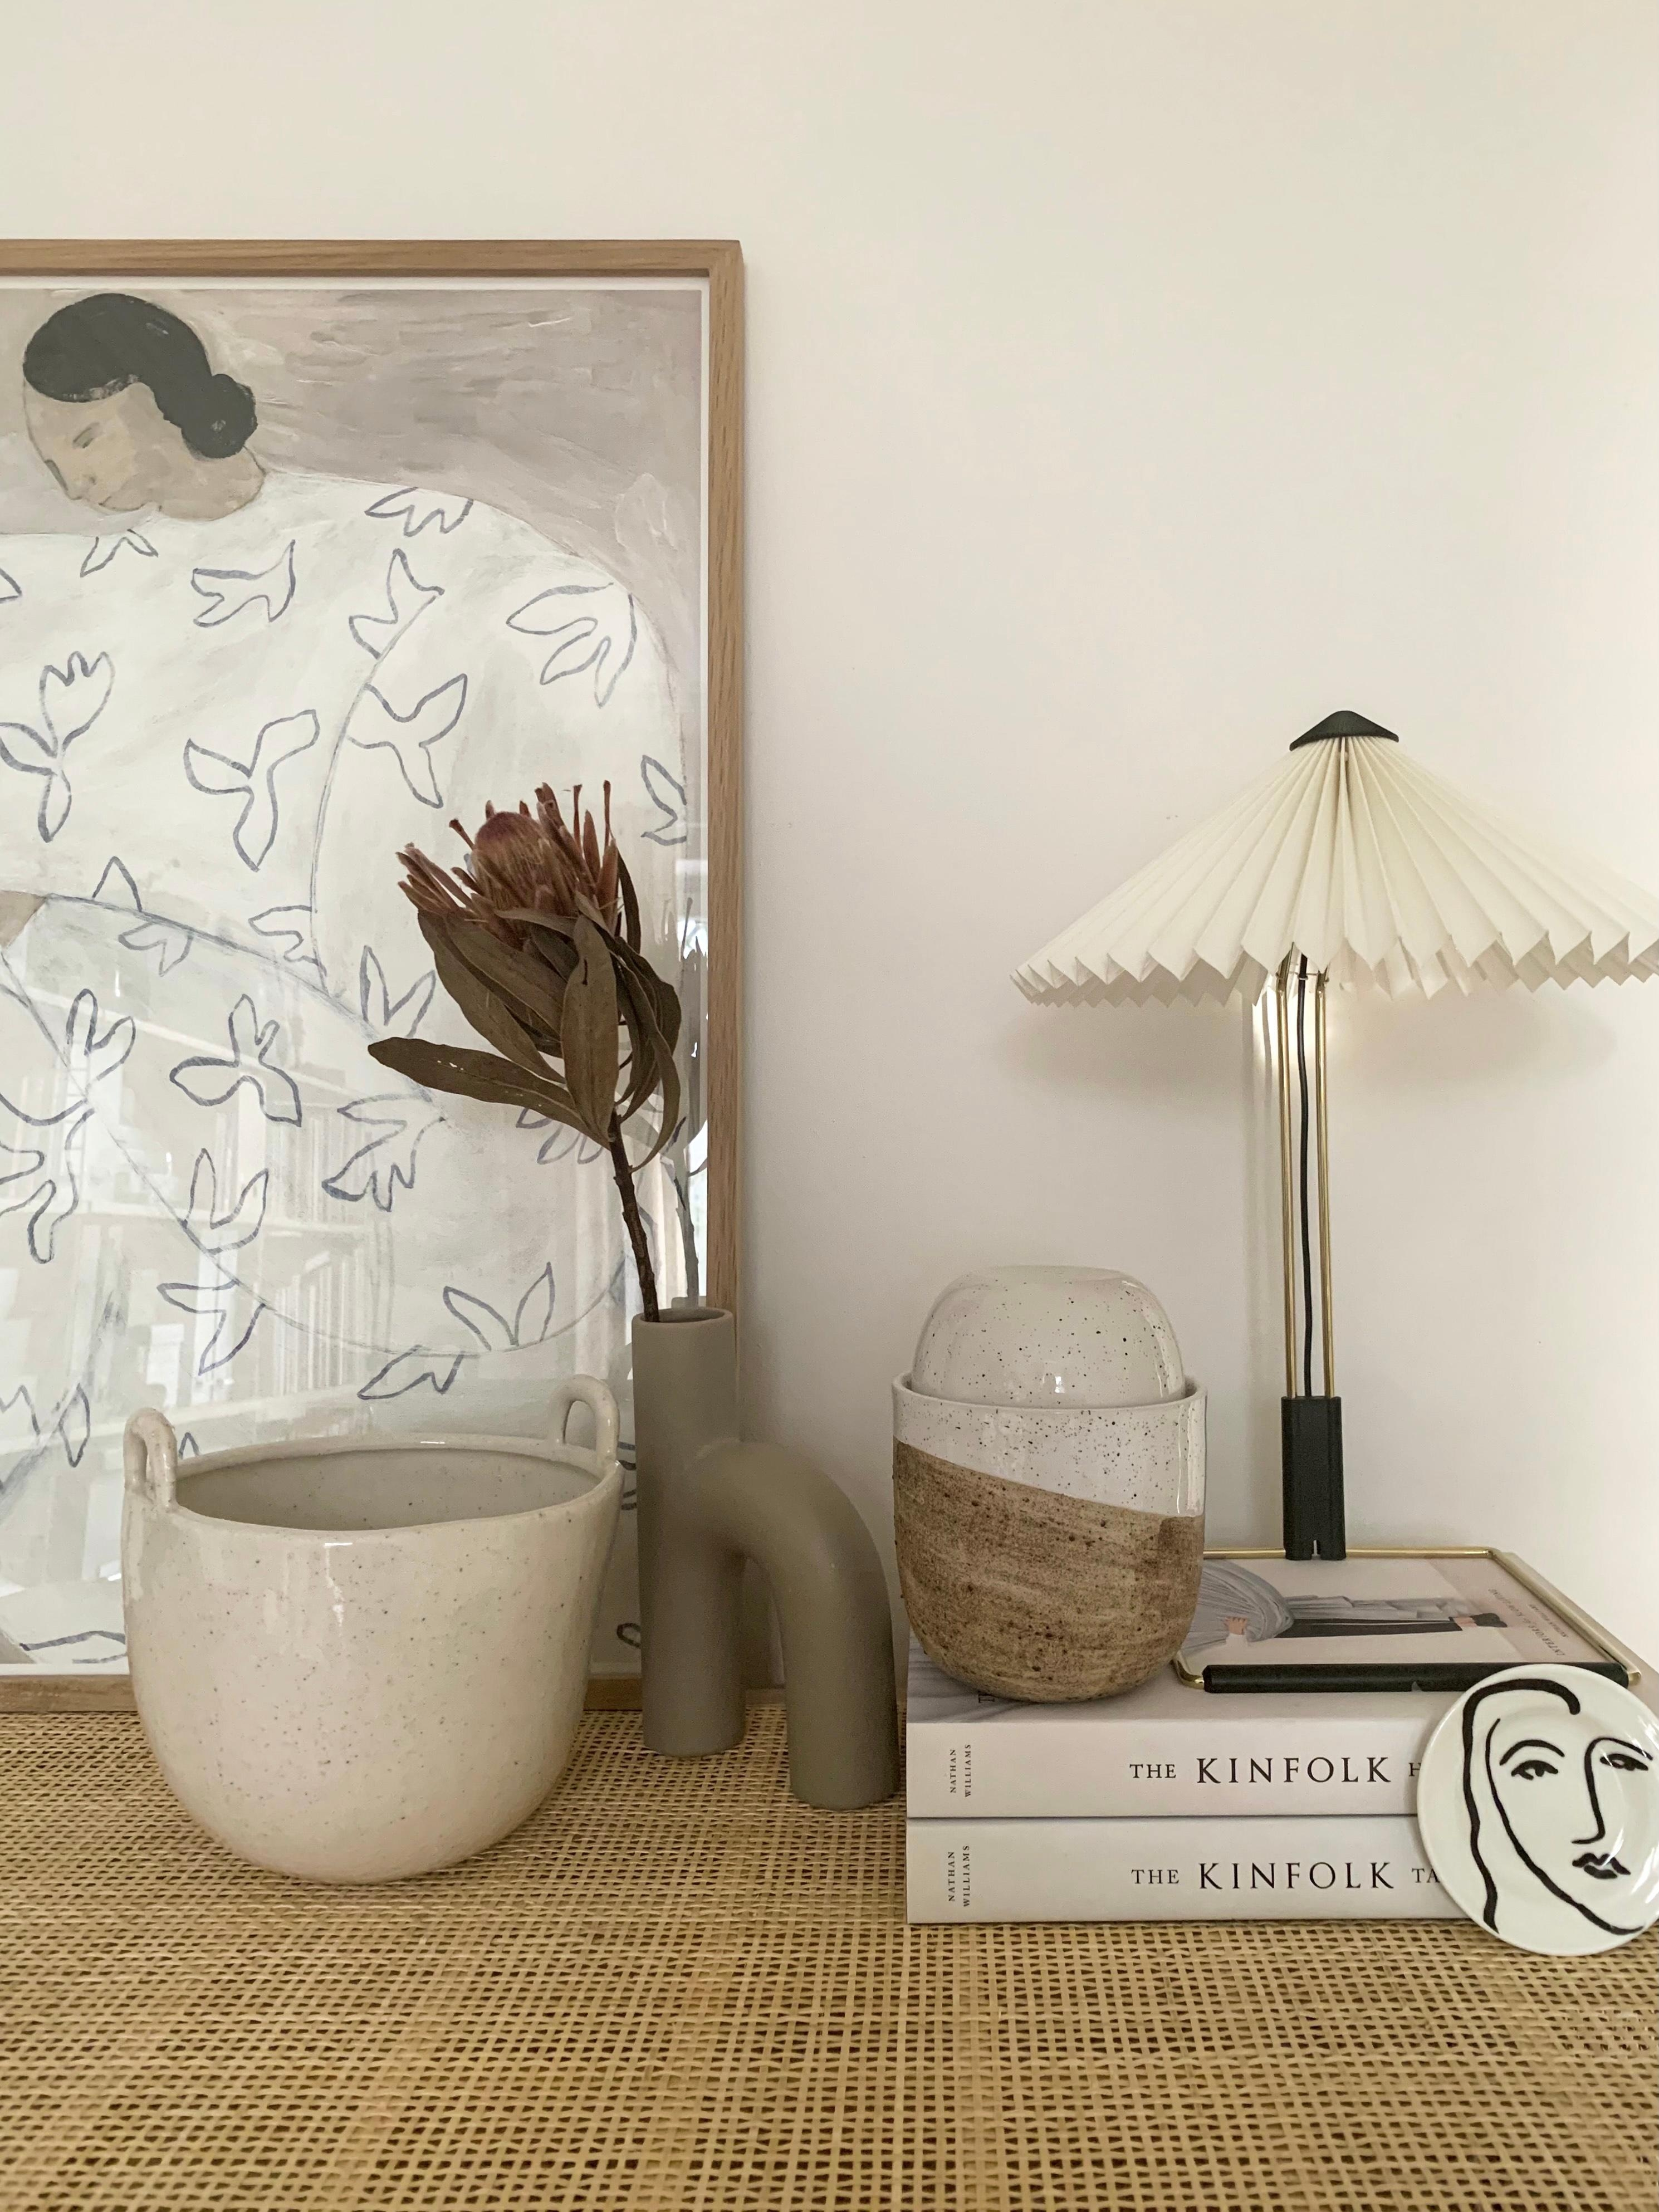 #deco #decoration #scandinavischwohnen #scandinavianhome #scandiinspo #scandinaviandesign #myscandiliving